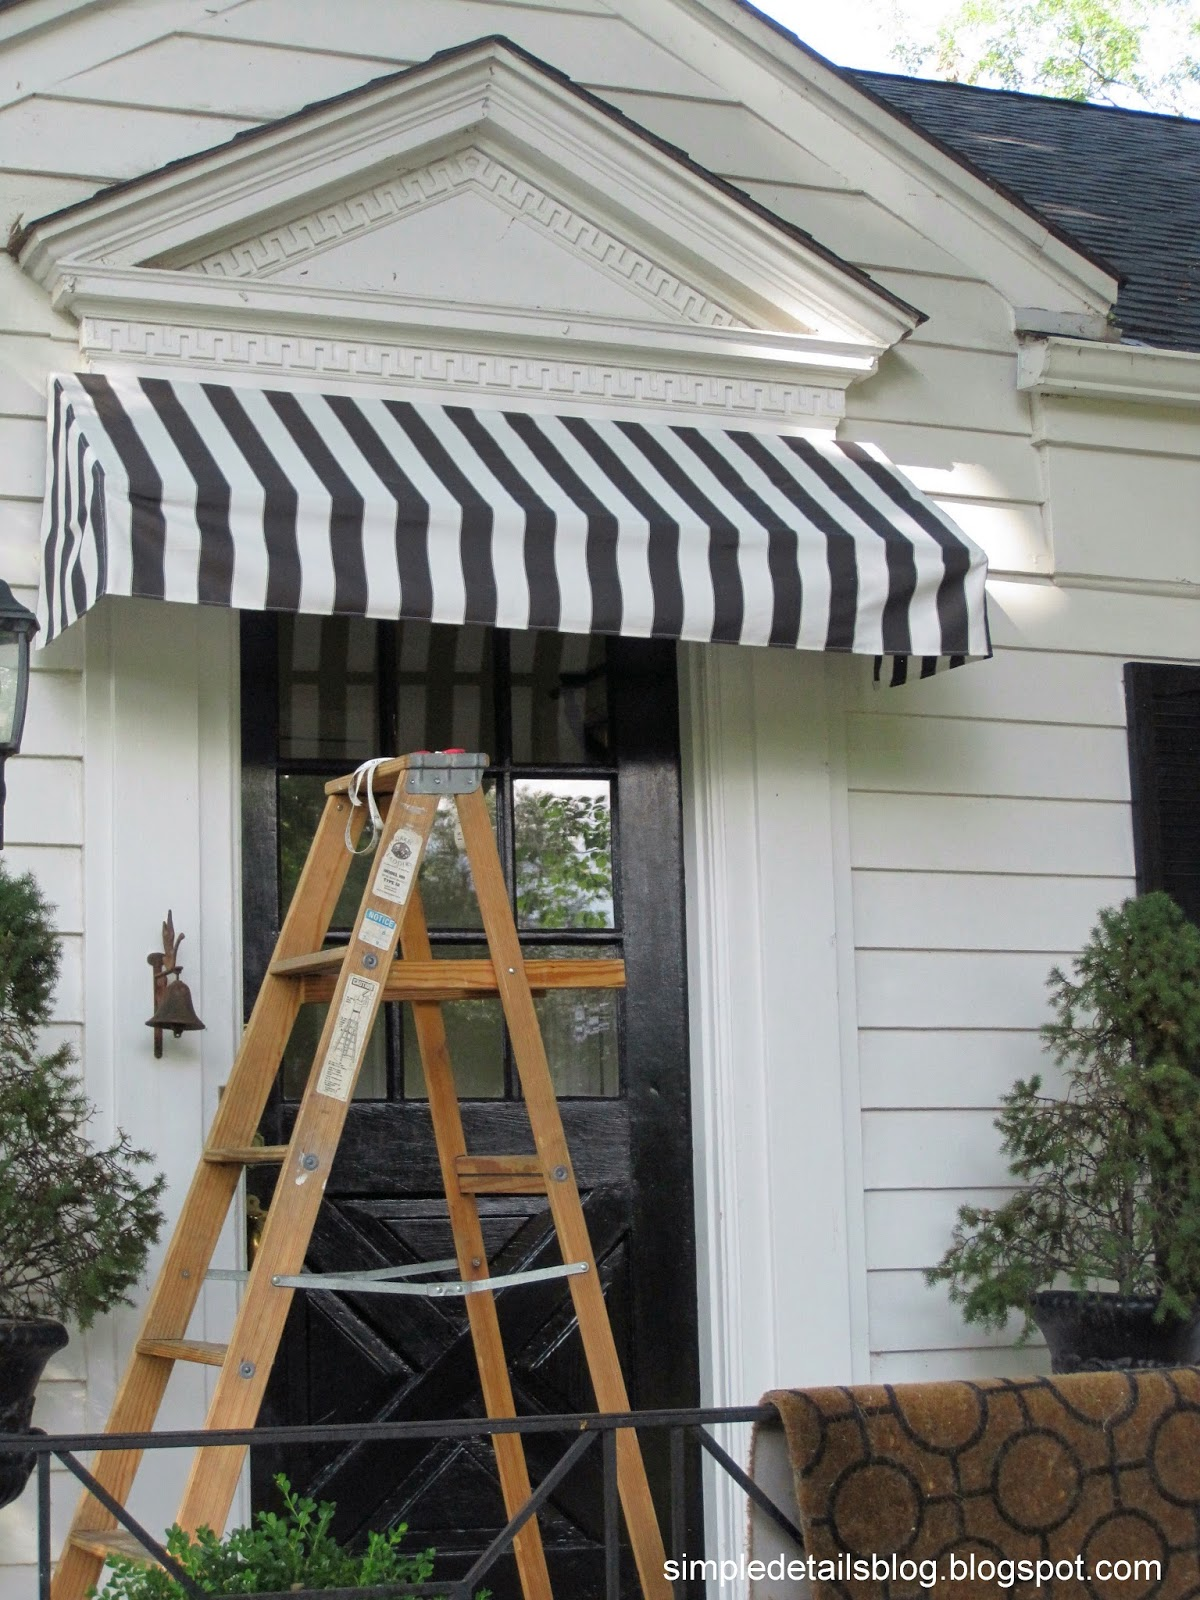 Simple Details Diy Awning Tutorial